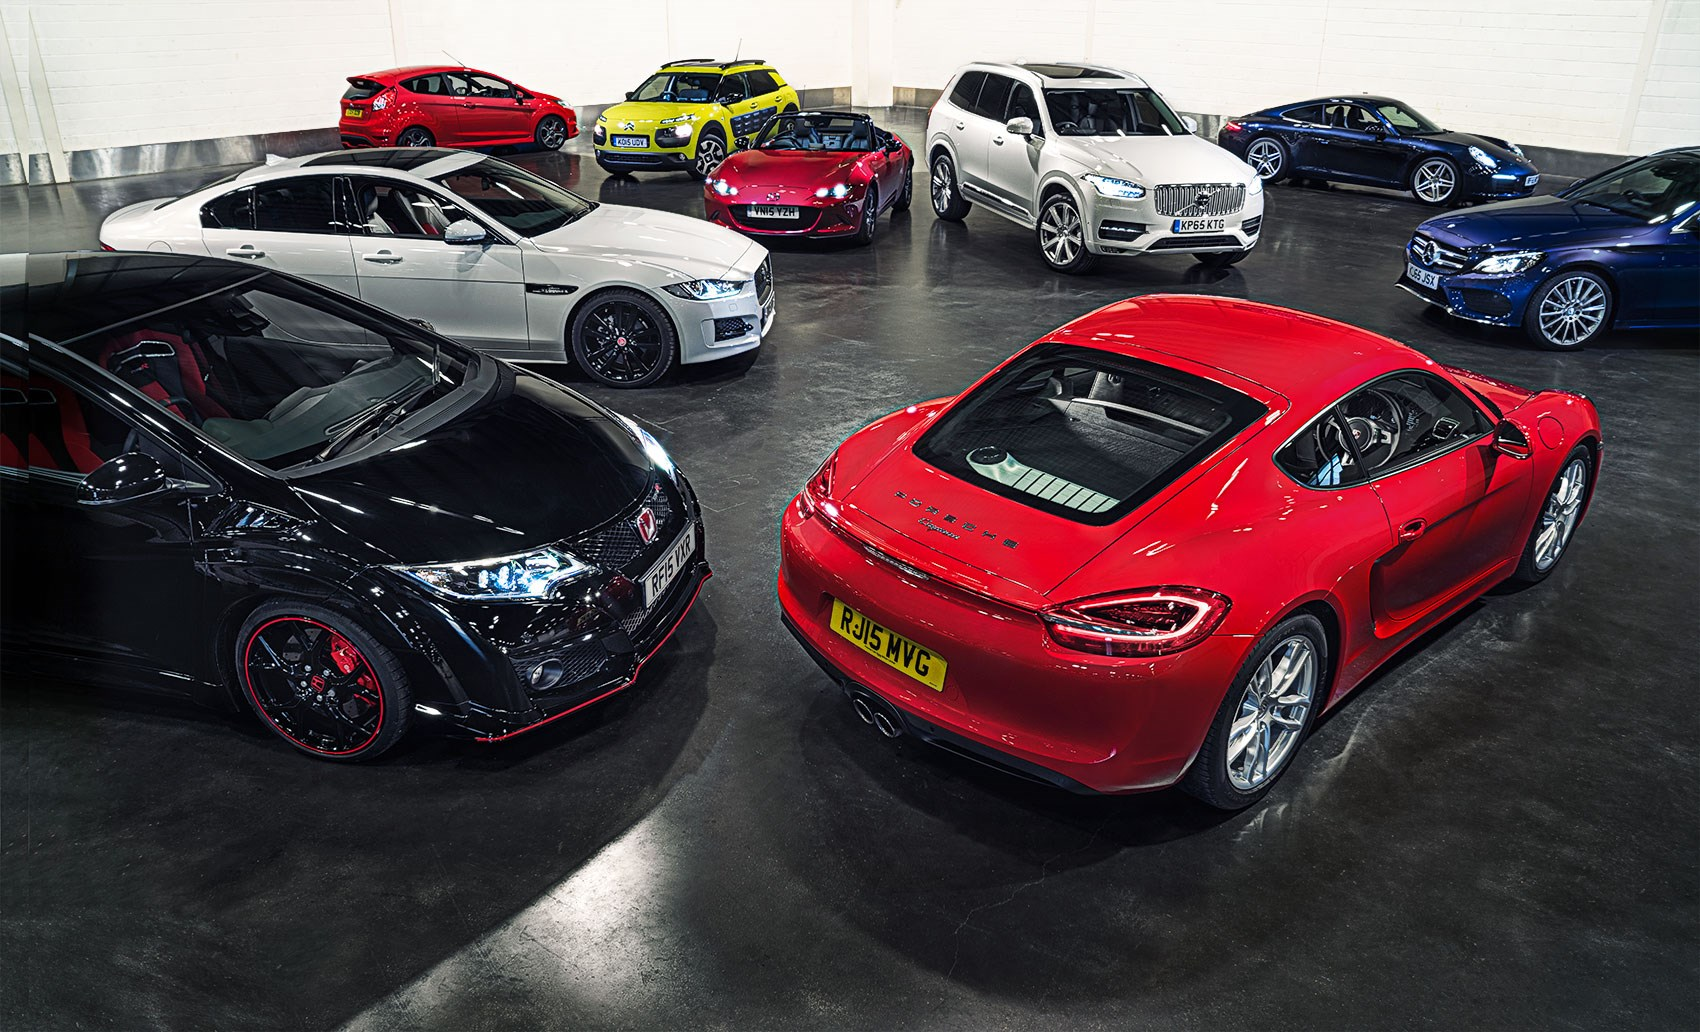 Leased Cars: 2016's Top Leasing Deals Revealed: Own An Epic Car From £